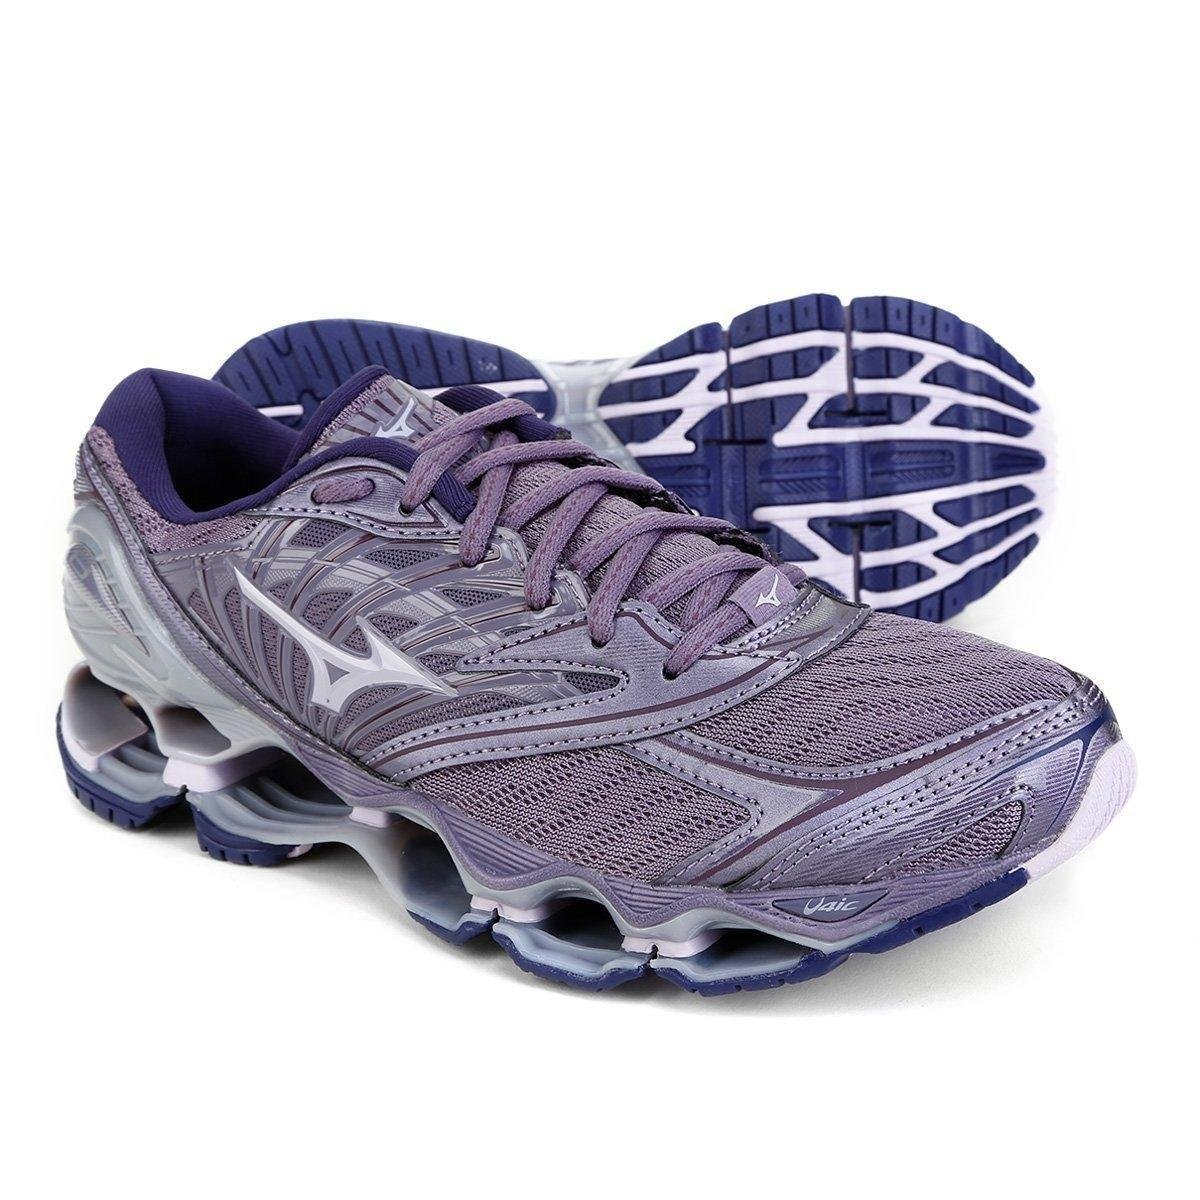 mizuno wave prophecy 2 women's uomo ultra precio